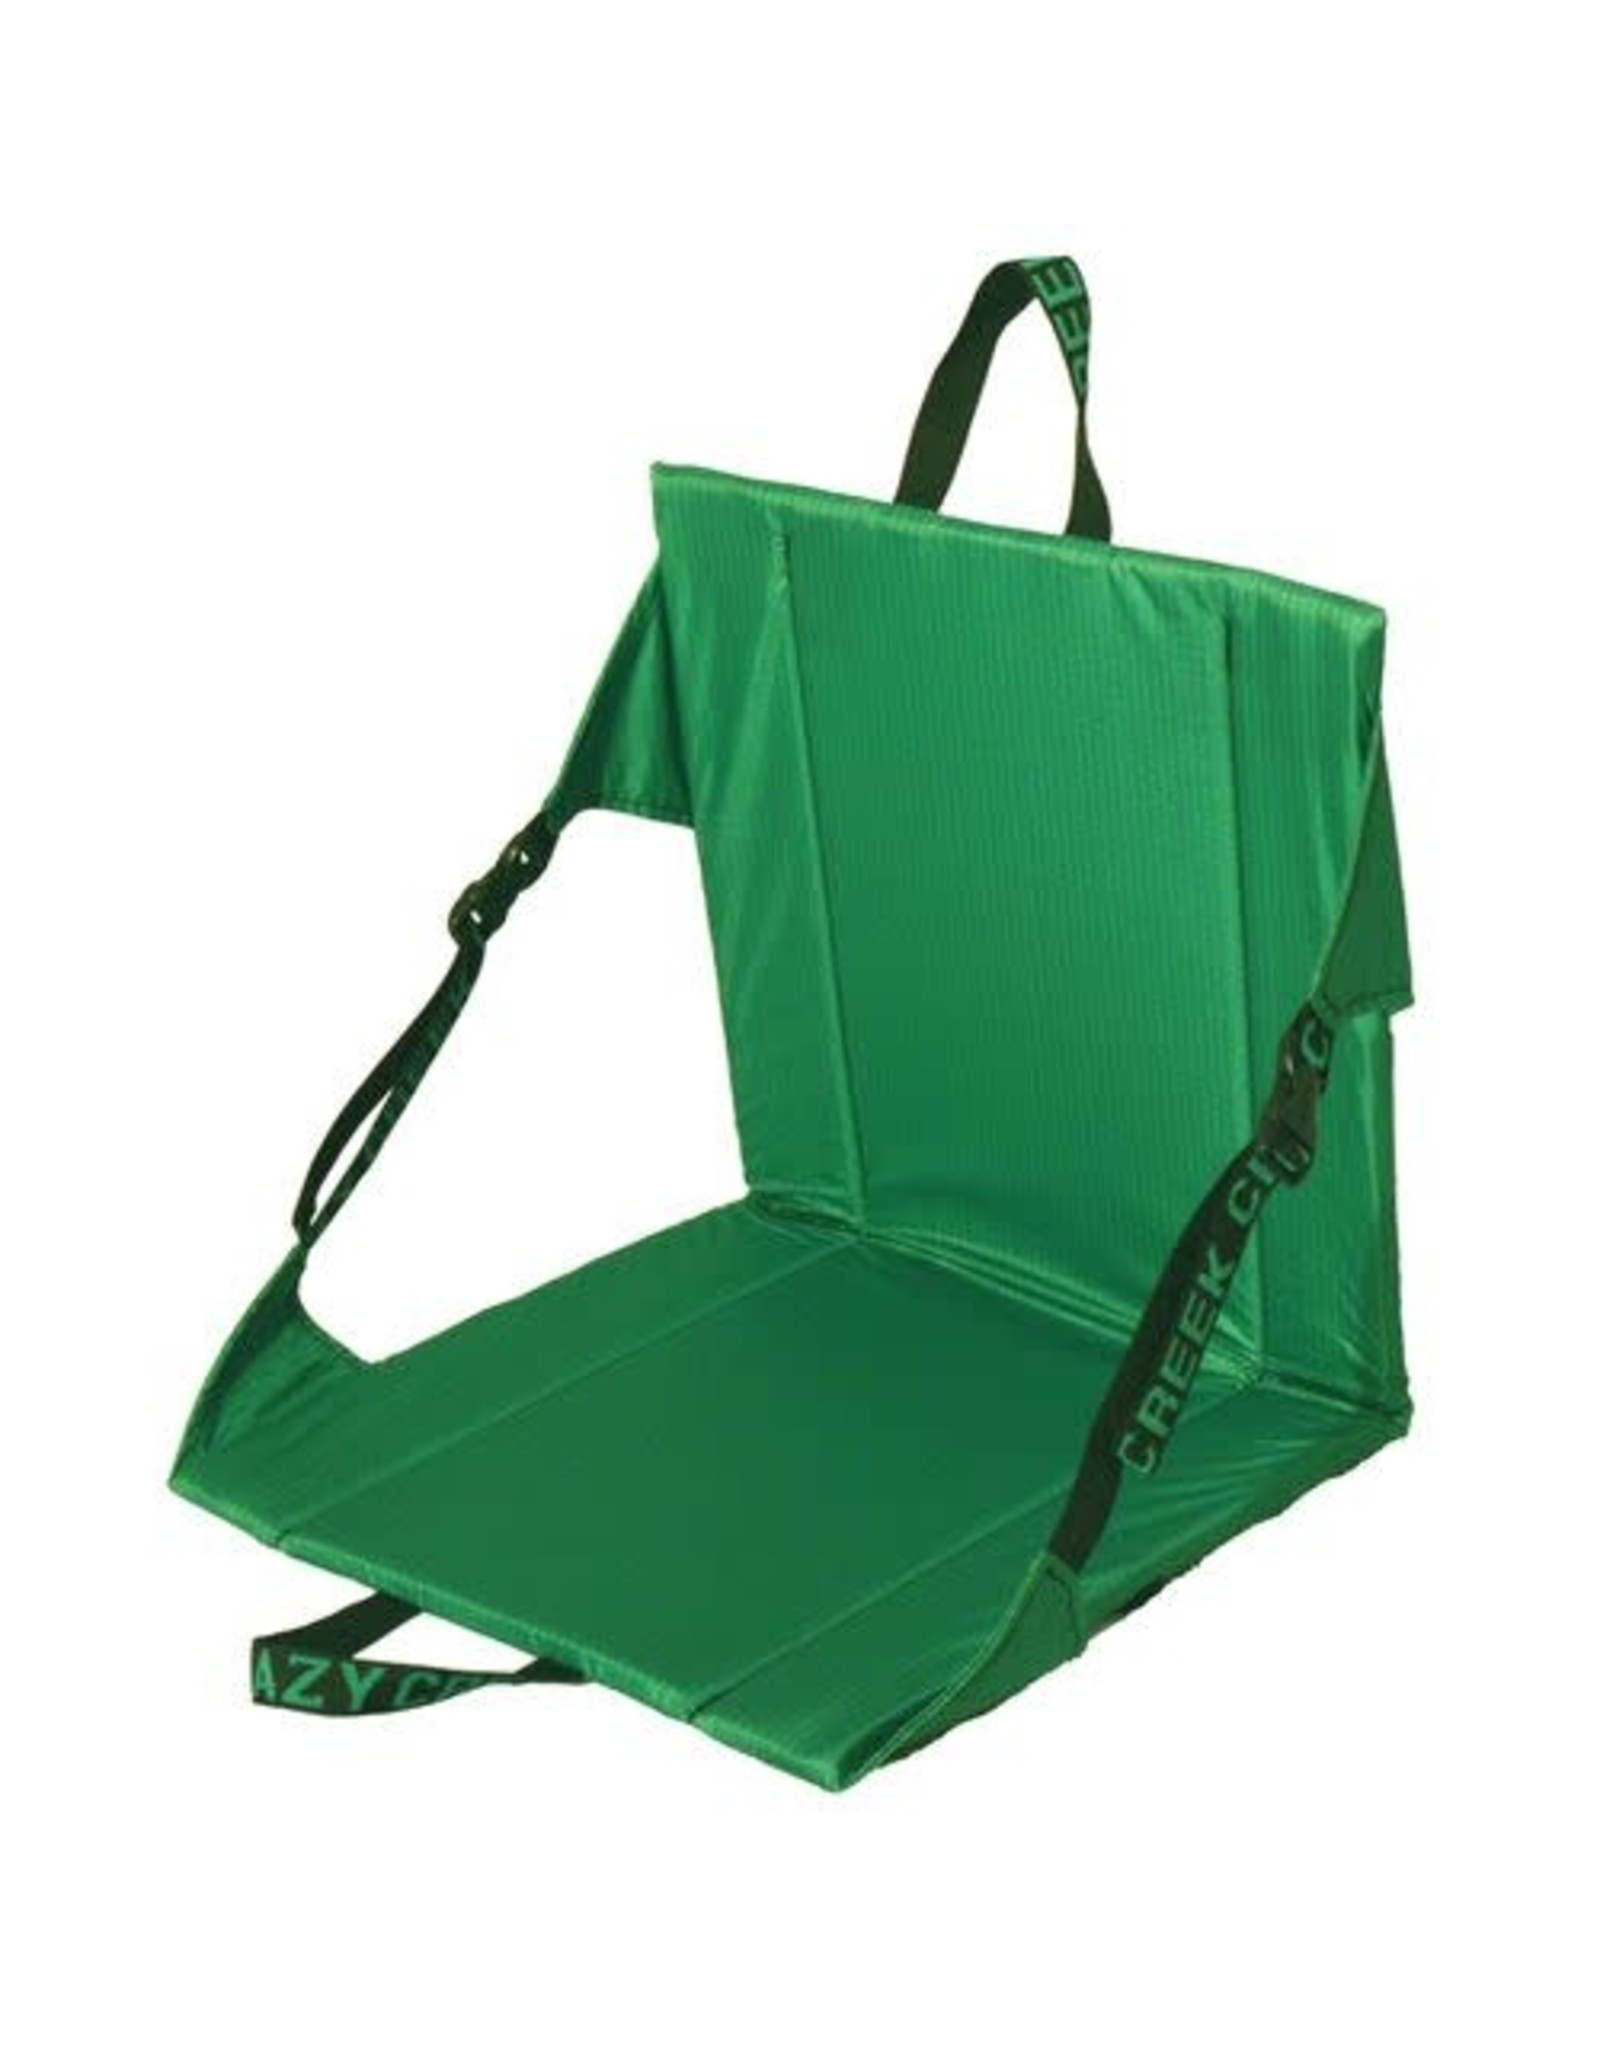 NRS, Inc Crazy Creek Original Travel Chair Green